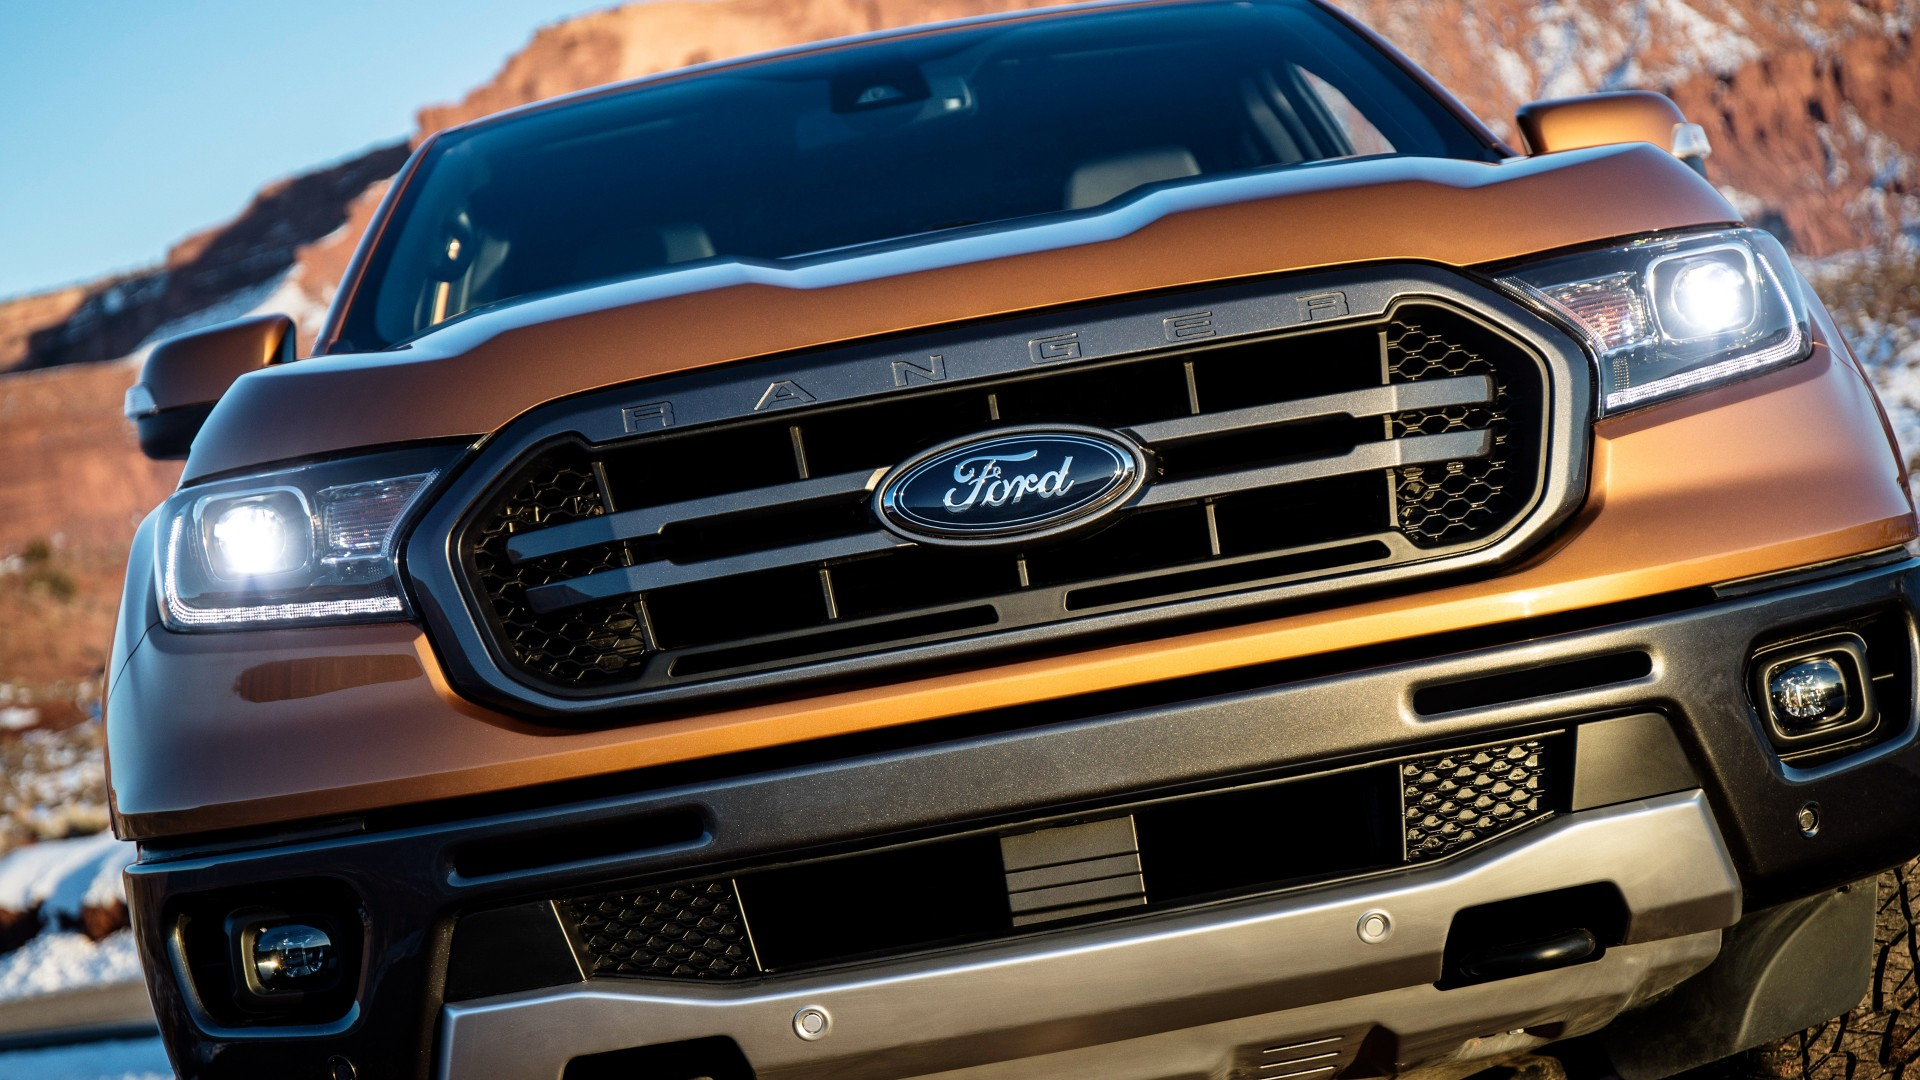 2019 Ford Ranger FX4 Lariat SuperCrew 4K Wallpaper | HD ...